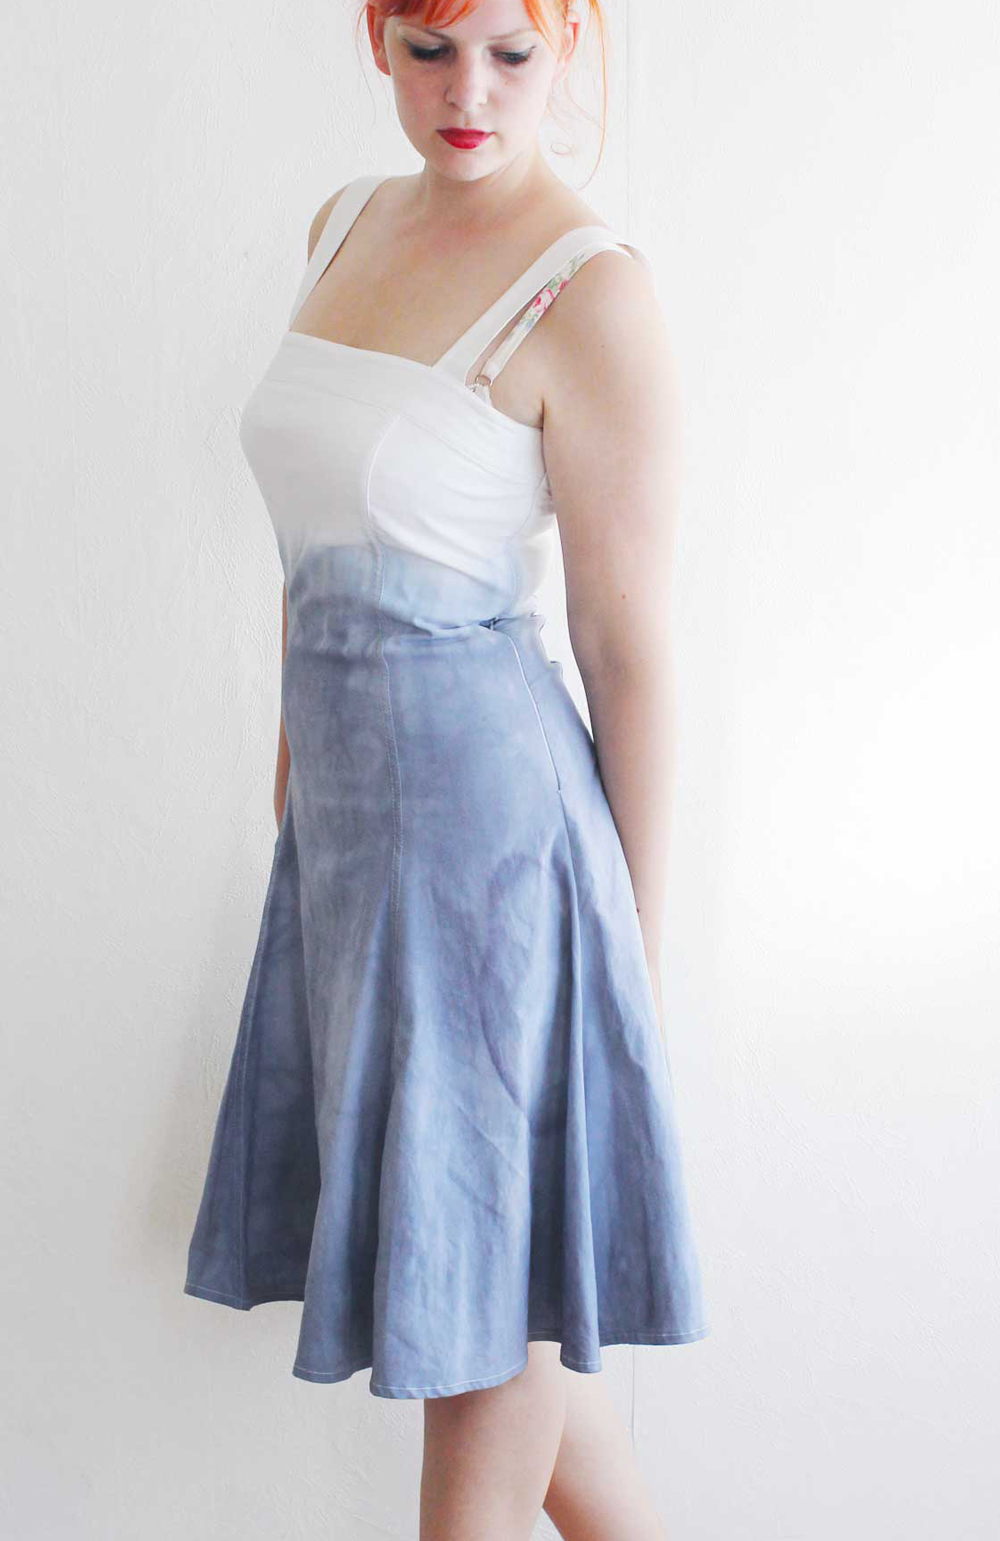 DIY | Dip Dye Dress